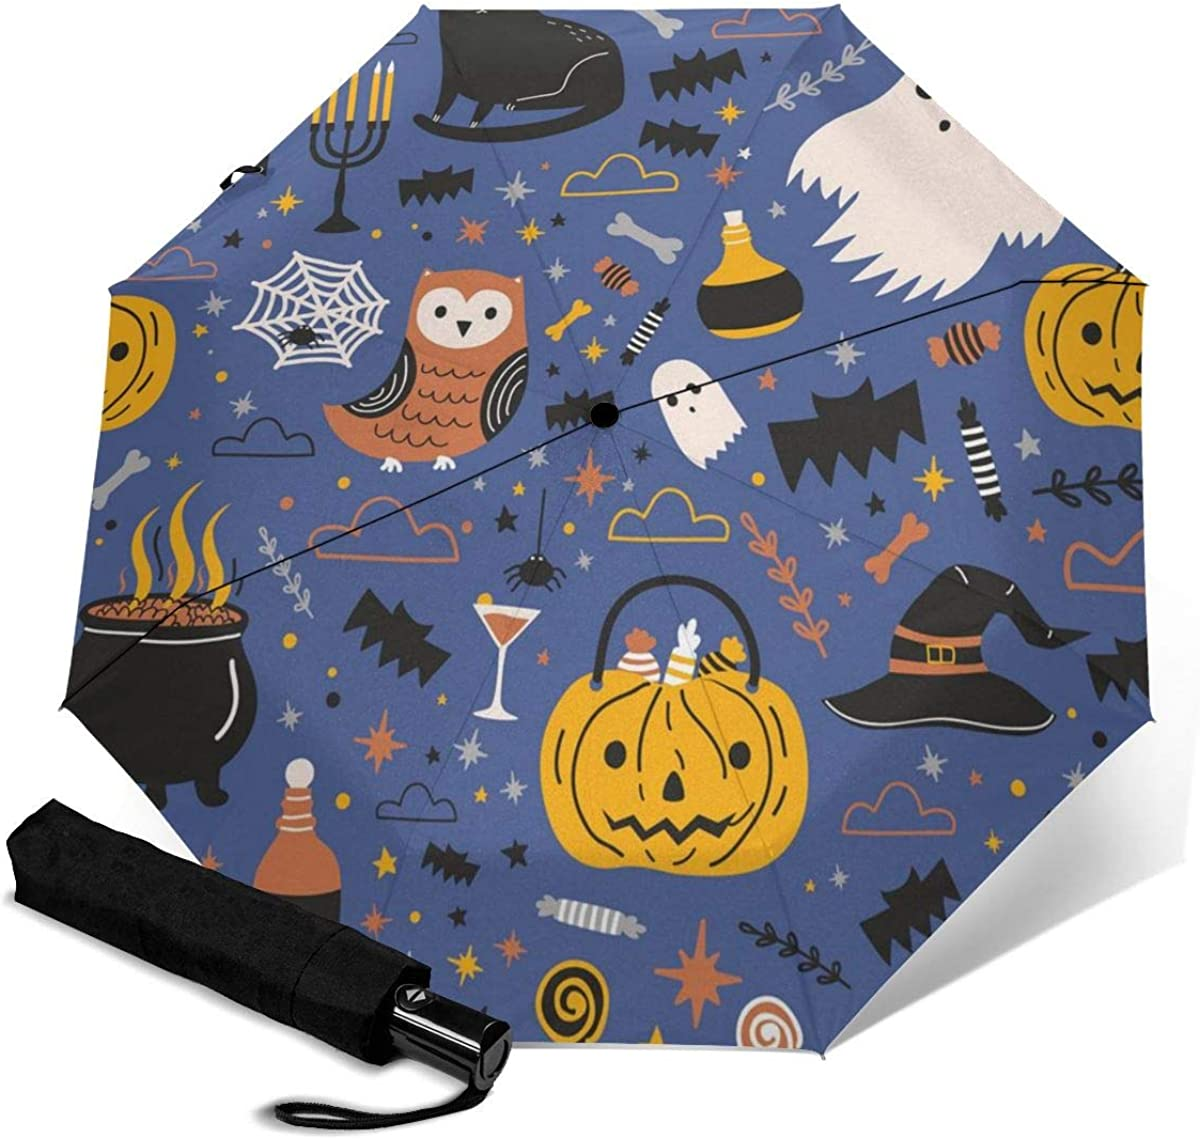 Halloween Funny Spooky Magic Compact Travel Umbrella Windproof Reinforced Canopy 8 Ribs Umbrella Auto Open And Close Button Personalized